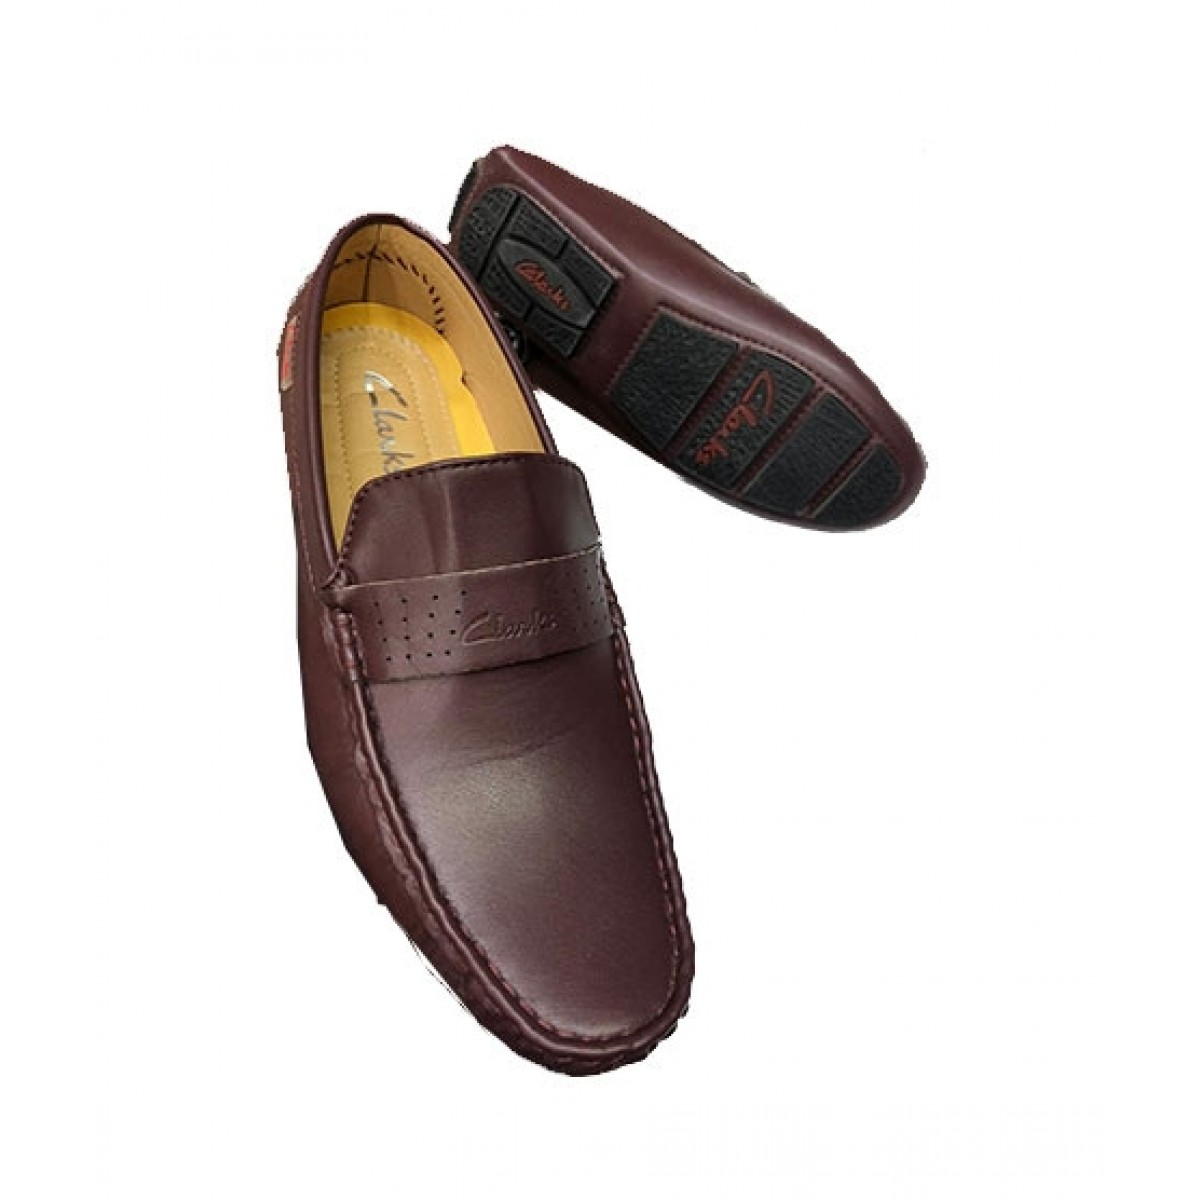 Clothink Casual Loafers For Men Brown